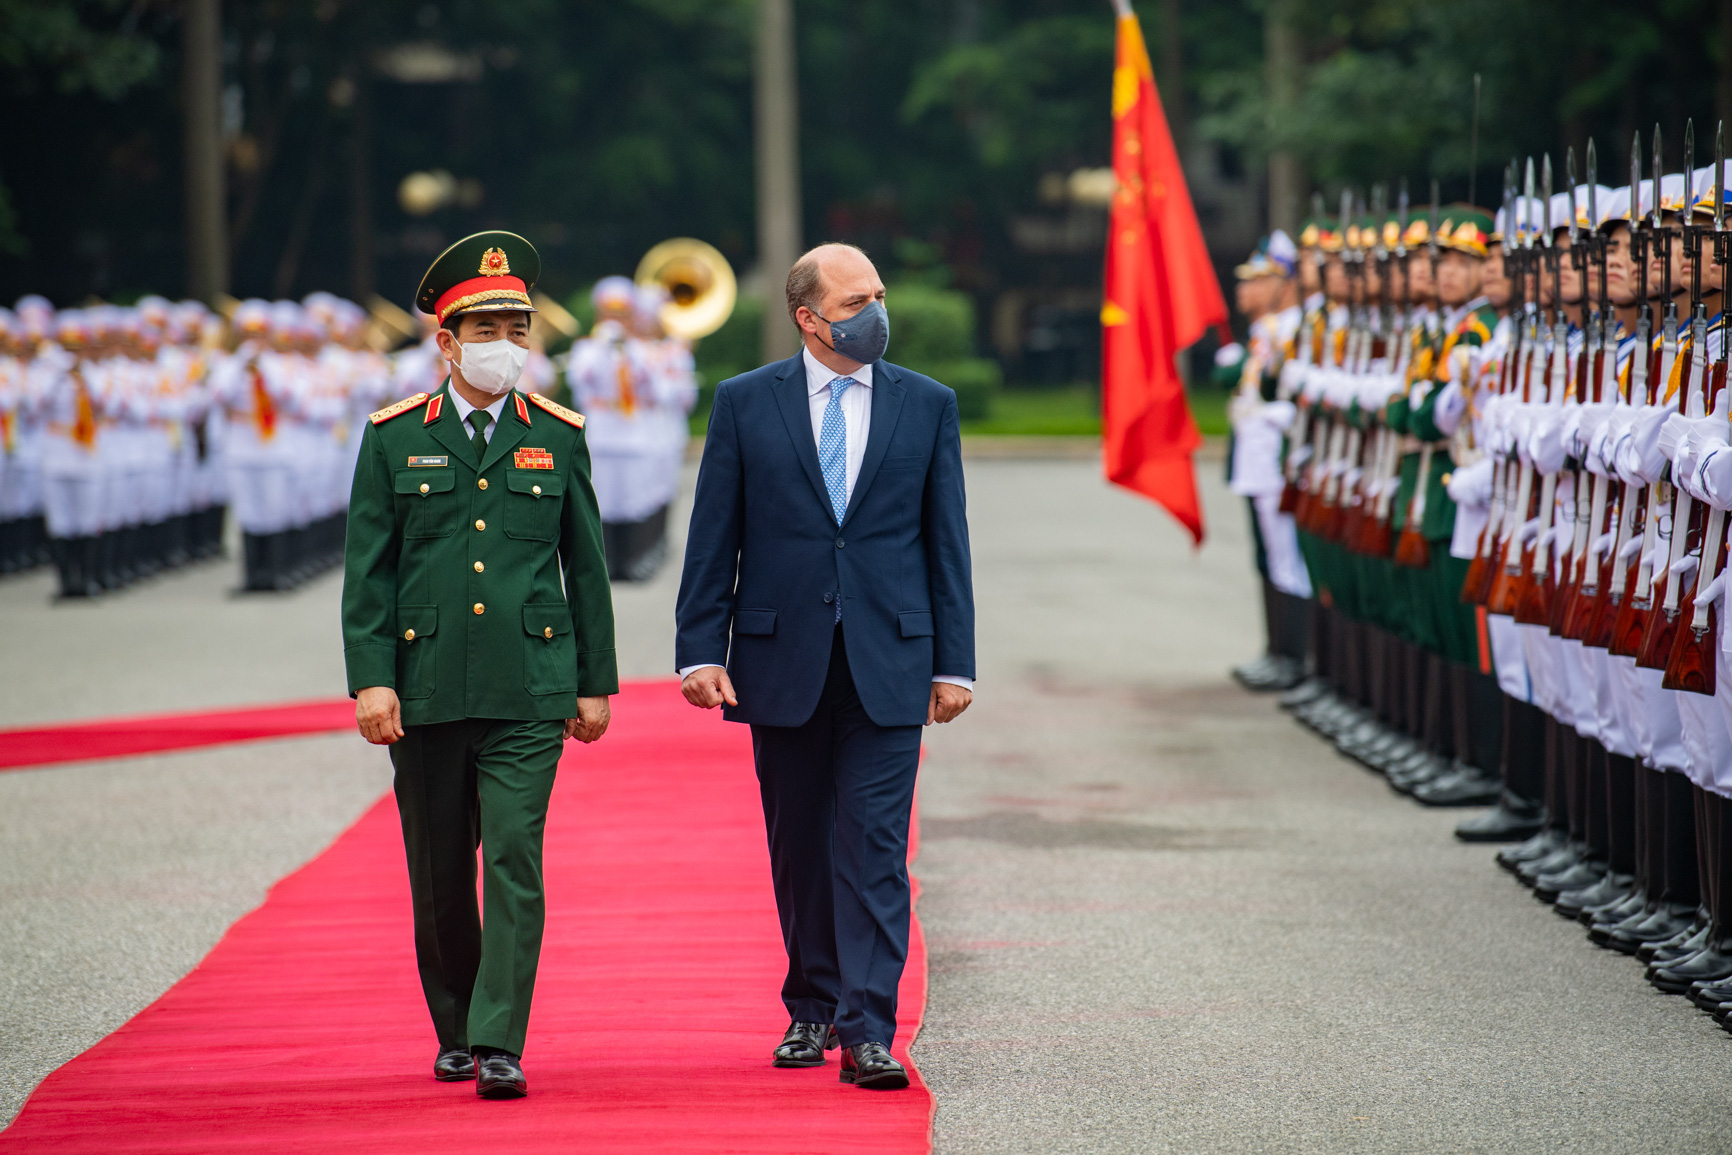 UK Secretary of State for Defense pays first official visit to Vietnam